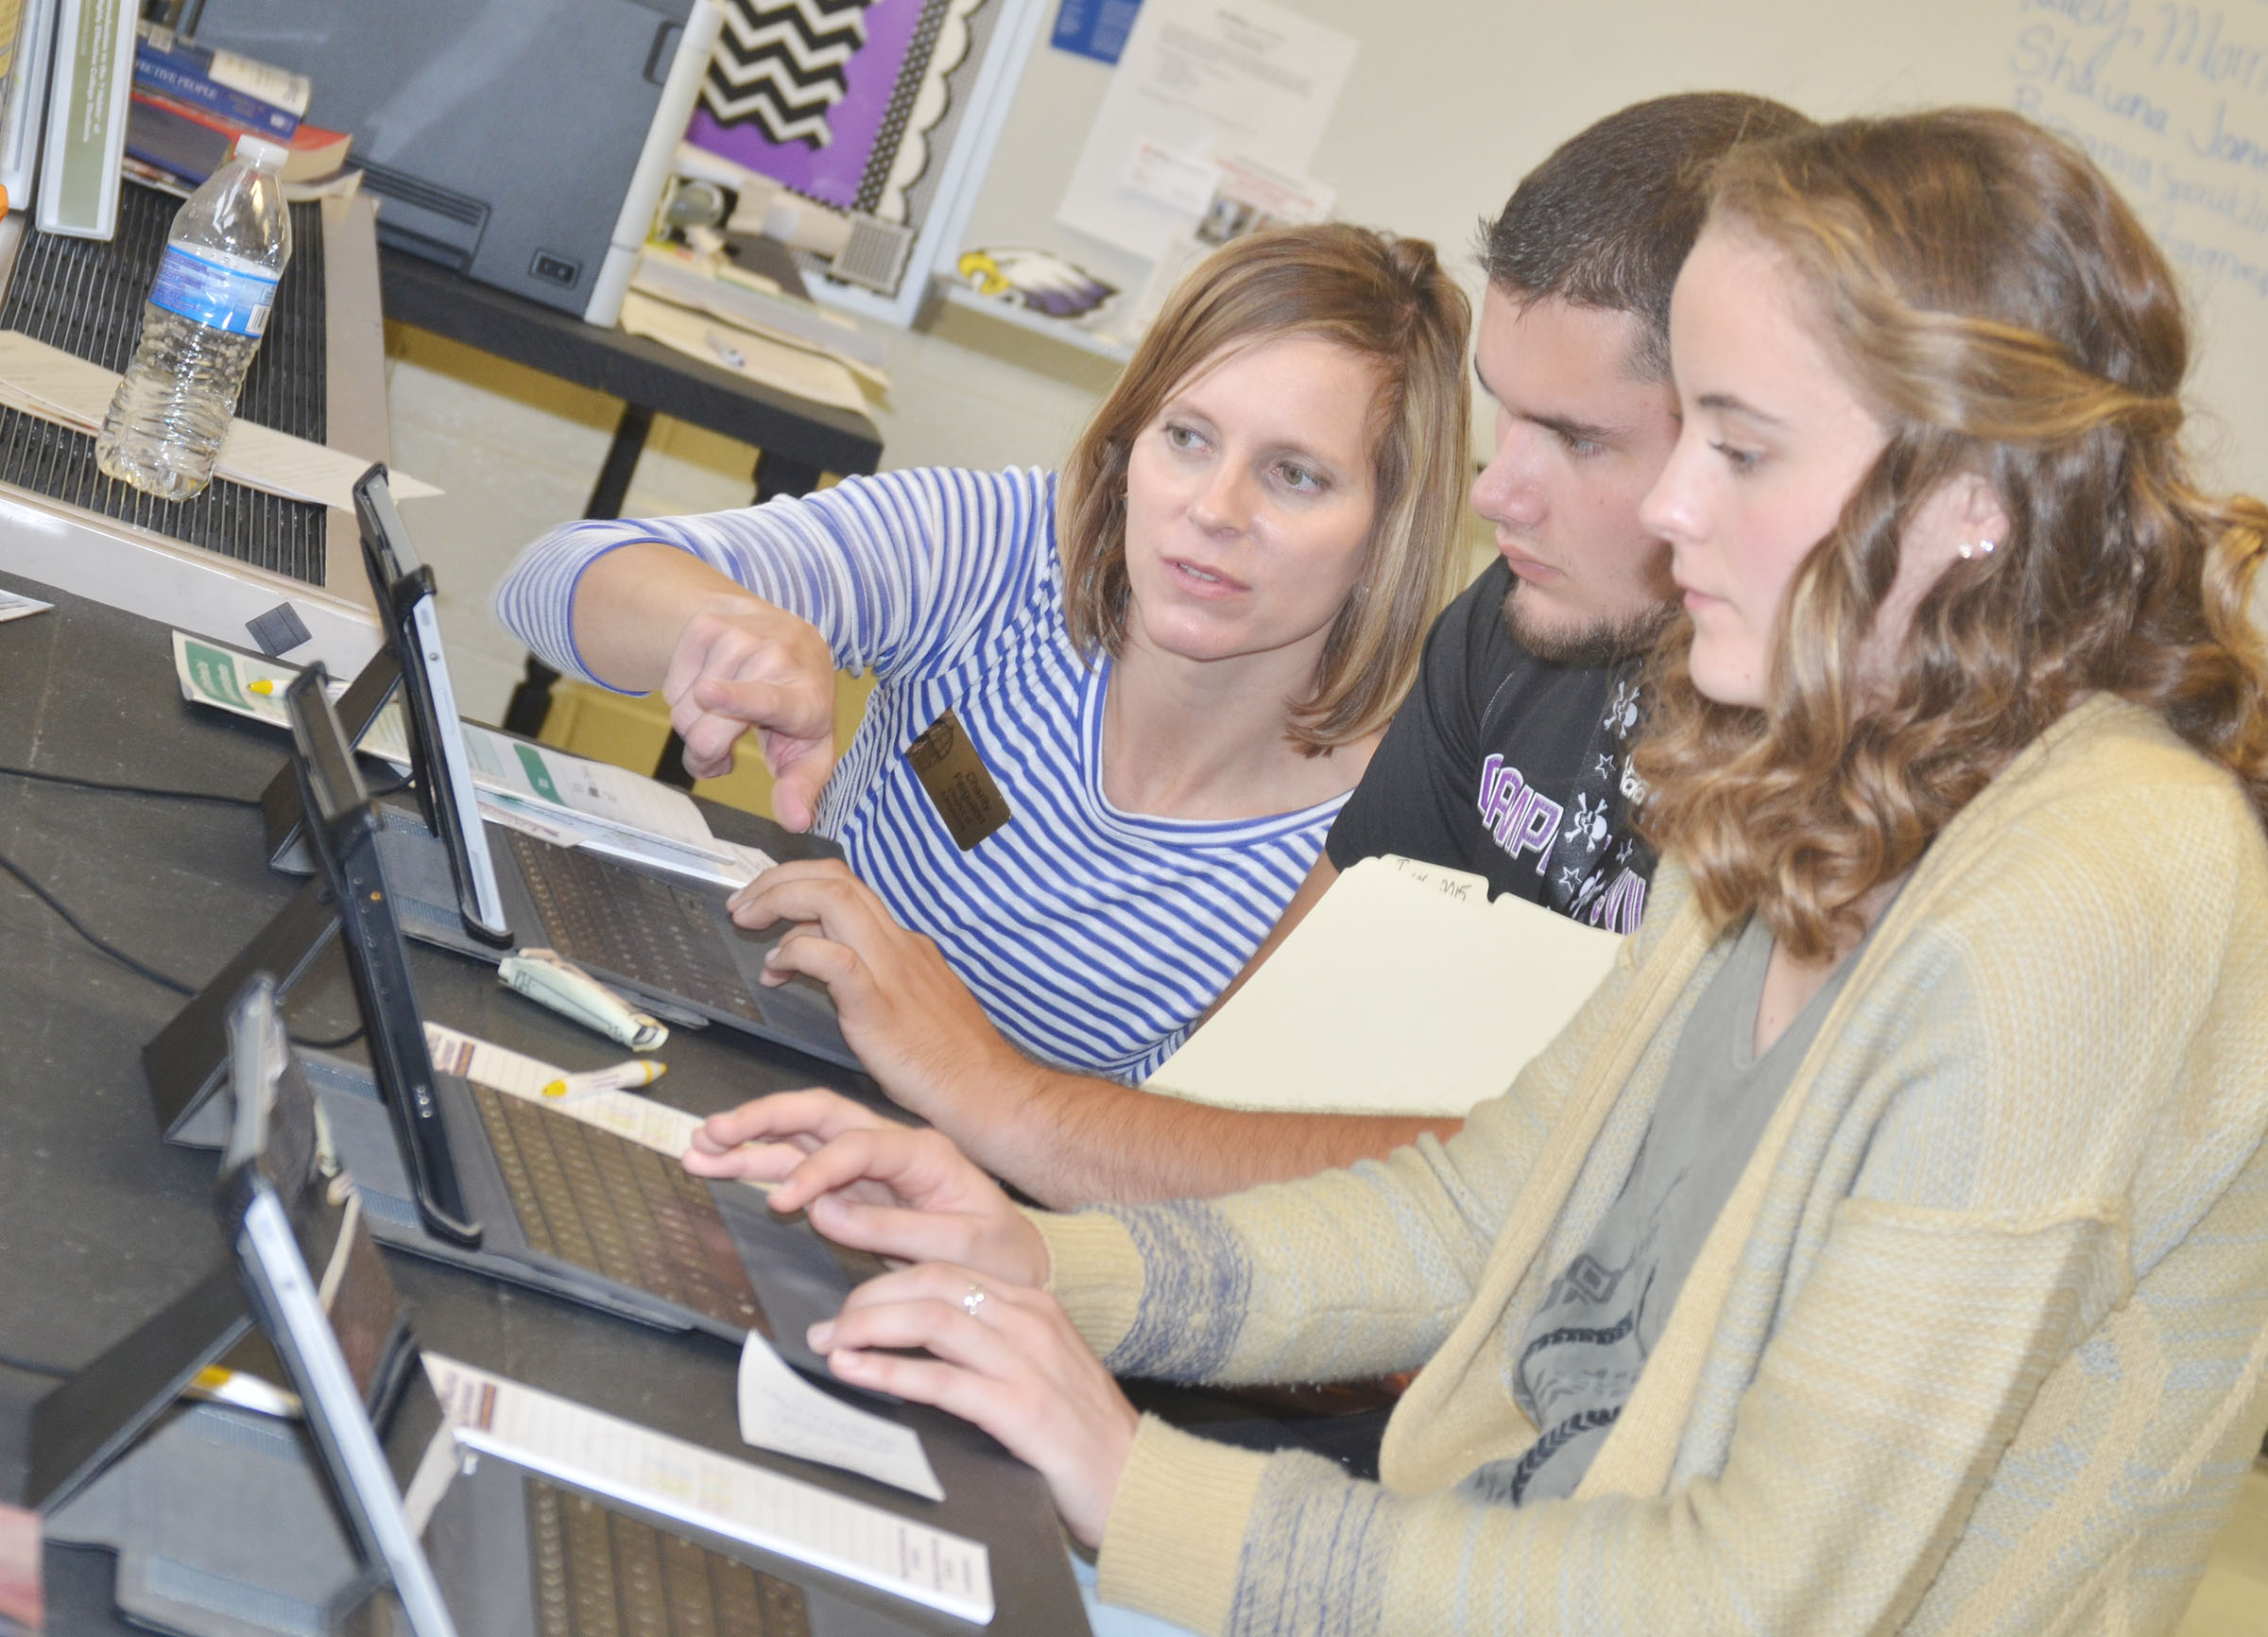 Charity Ferguson, director of admissions at Lindsey Wilson College, helps seniors Logan Brown, center, and Caroline McMahan with their FAFSAs.